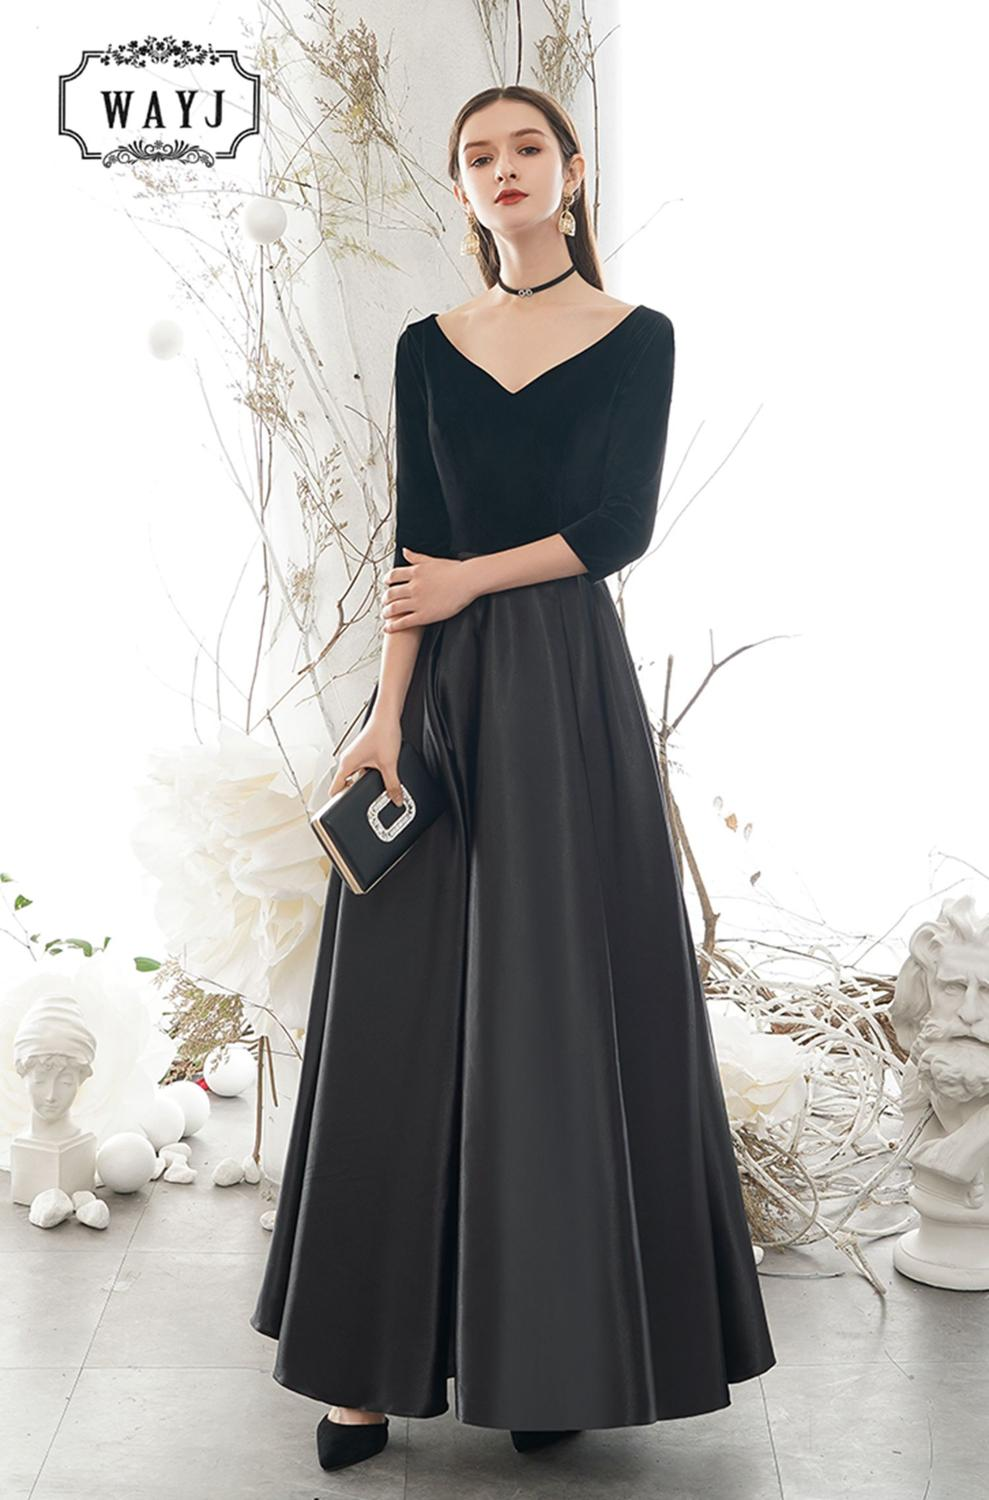 New Arrive Simple Sexy Evening Dresses 2020 Slim Tight A-Line Ladies Prom Dress High Quality Satin 3/4 sleeve Evening Gowns 2020